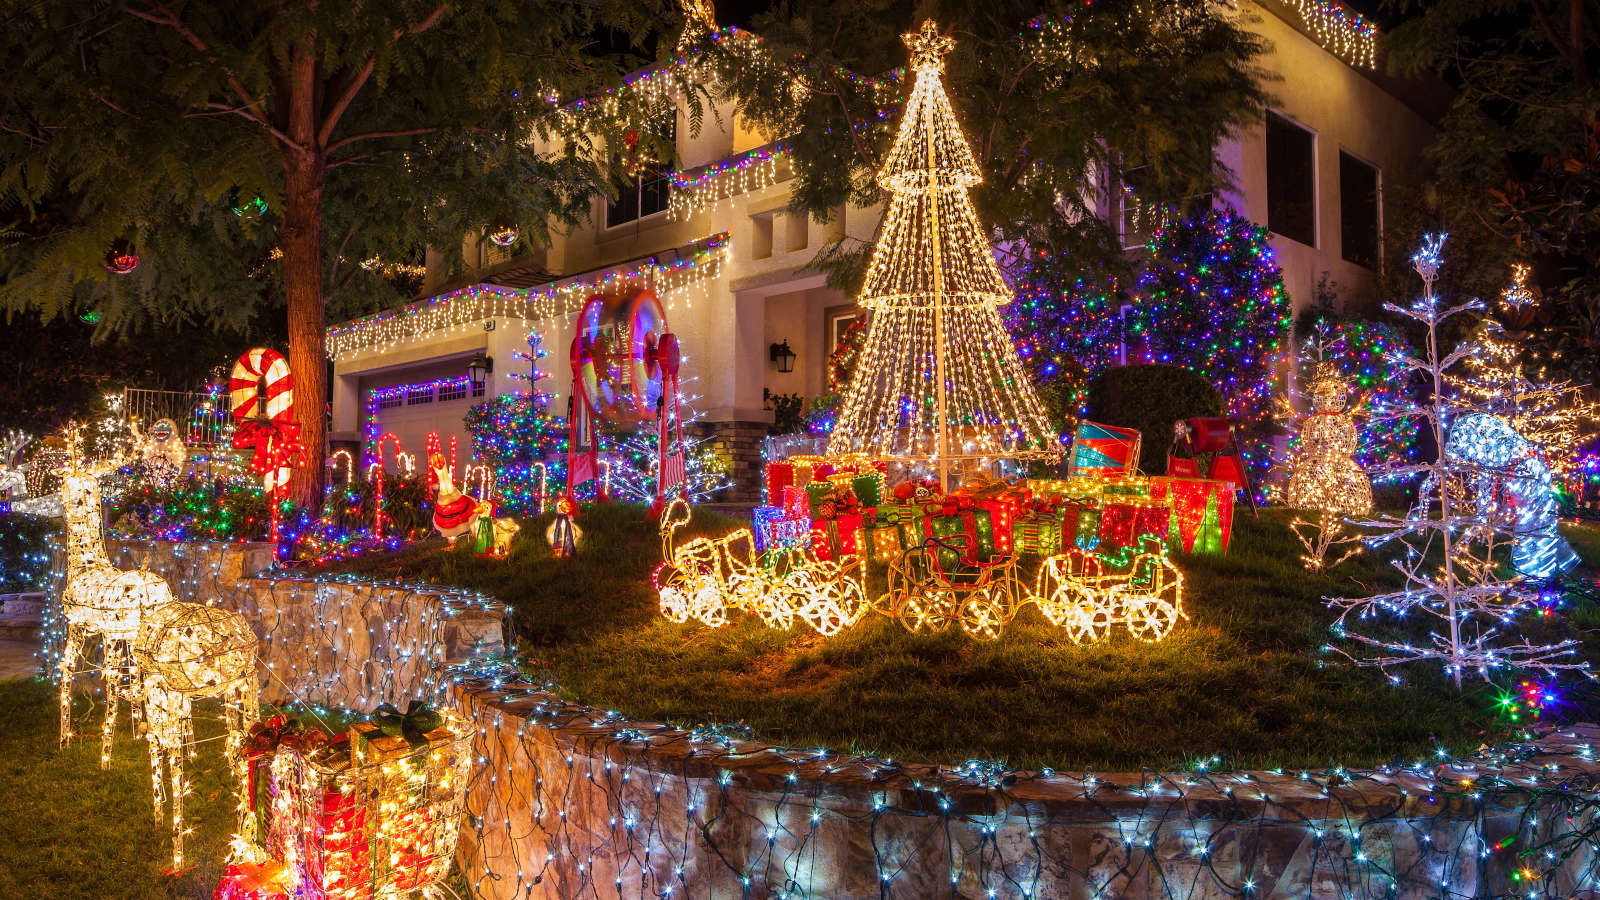 Use This Map to Find the Most Over-the-Top Holiday Decorations In Your Area